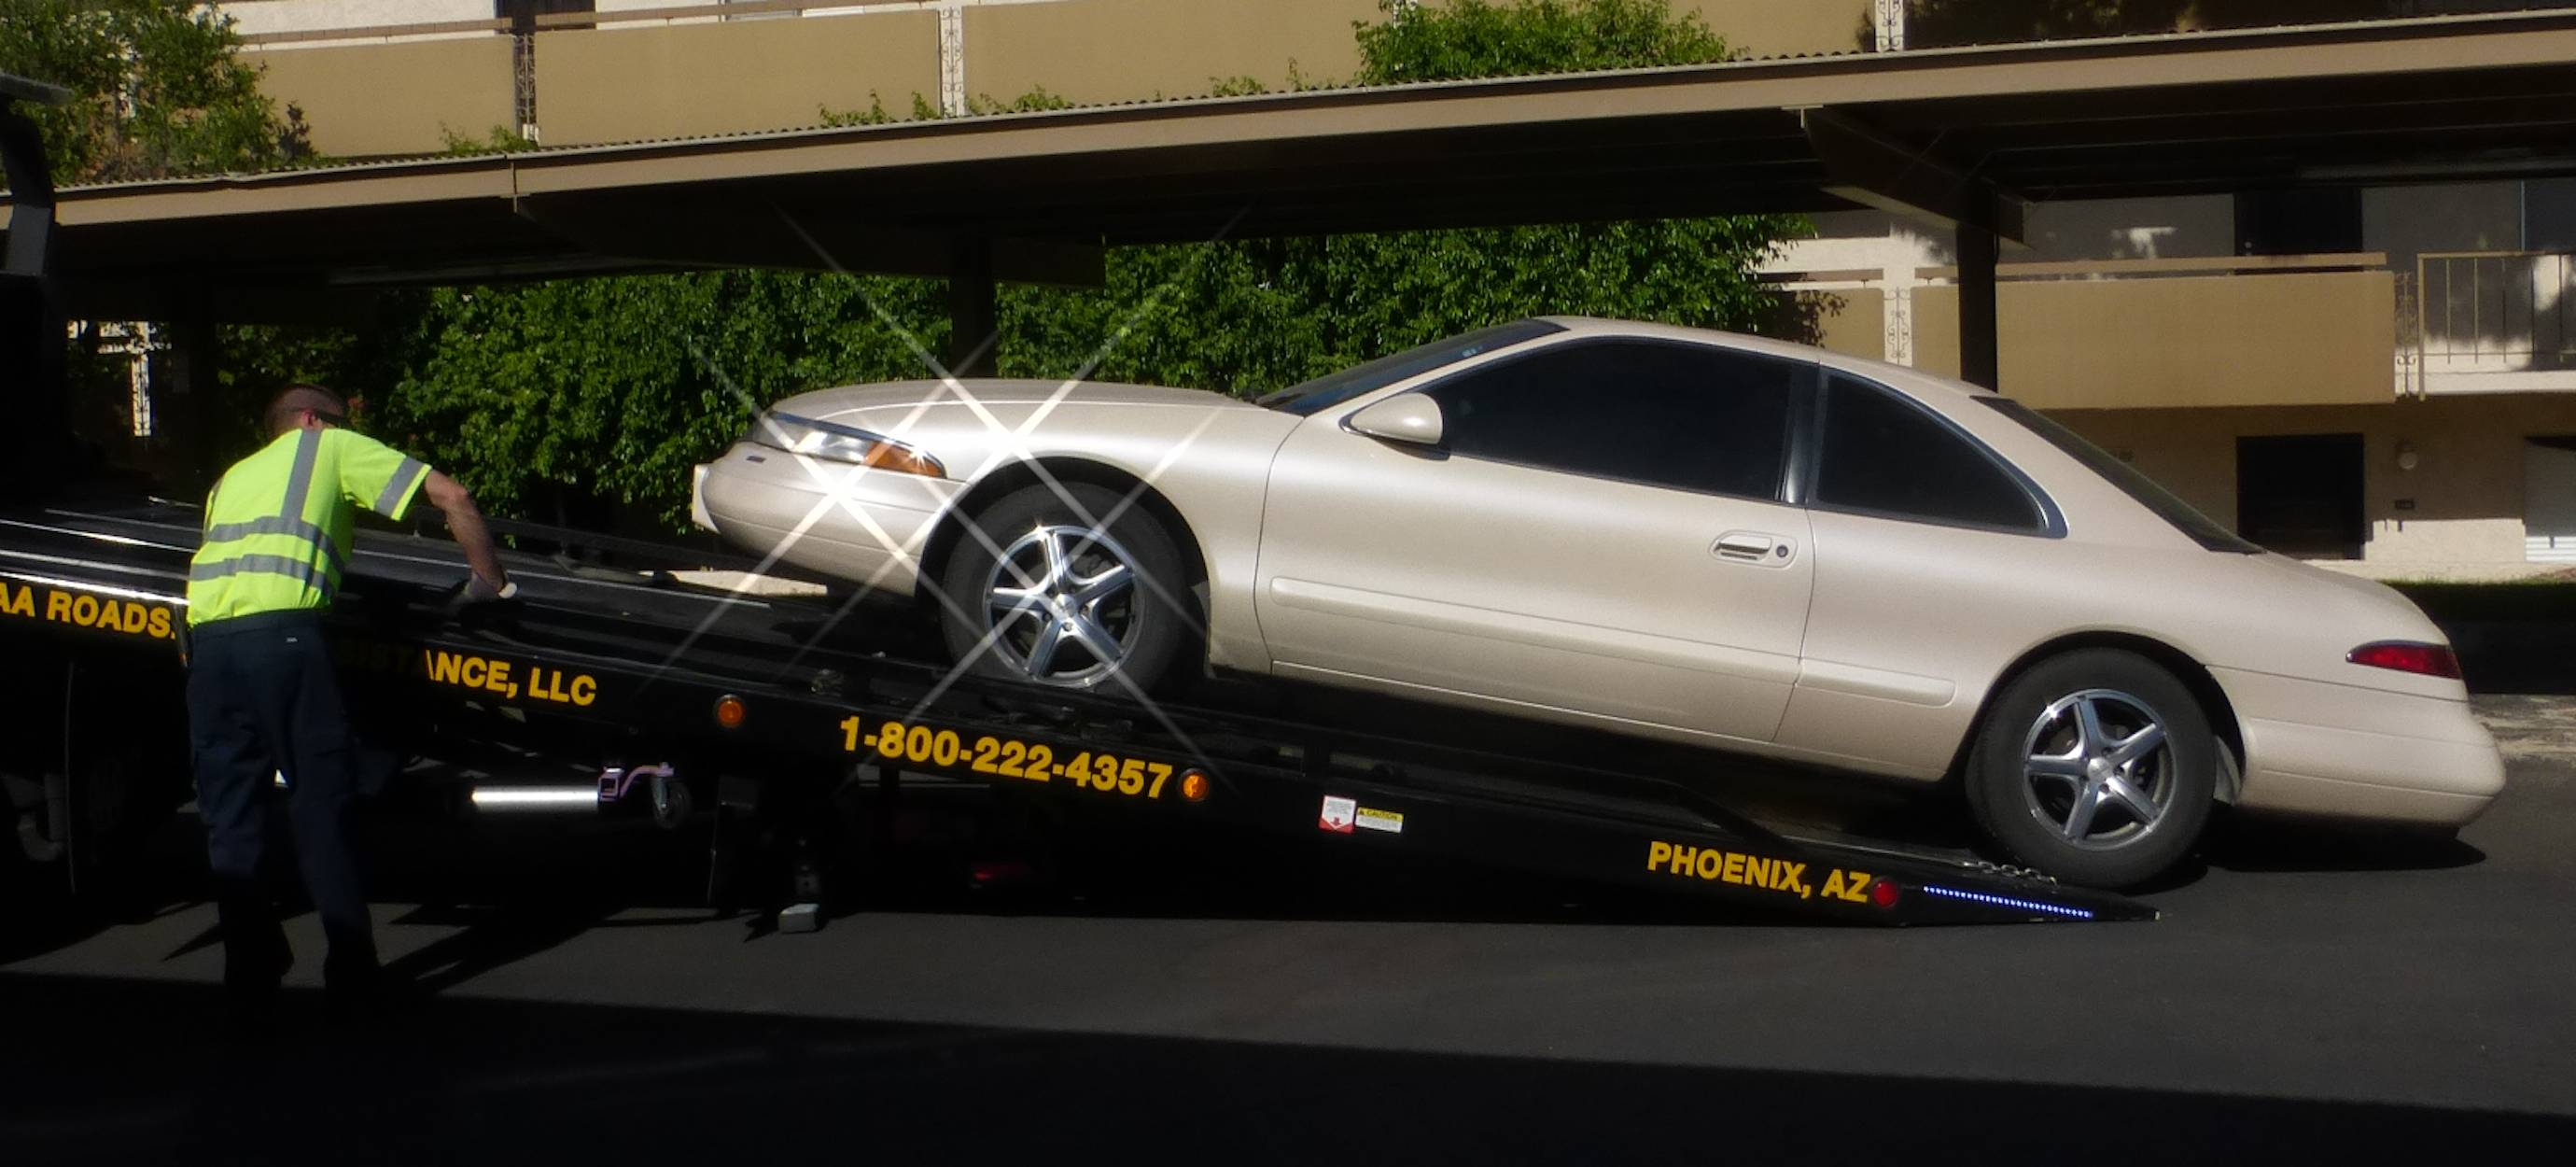 Pearl being loaded on tow truck.jpg